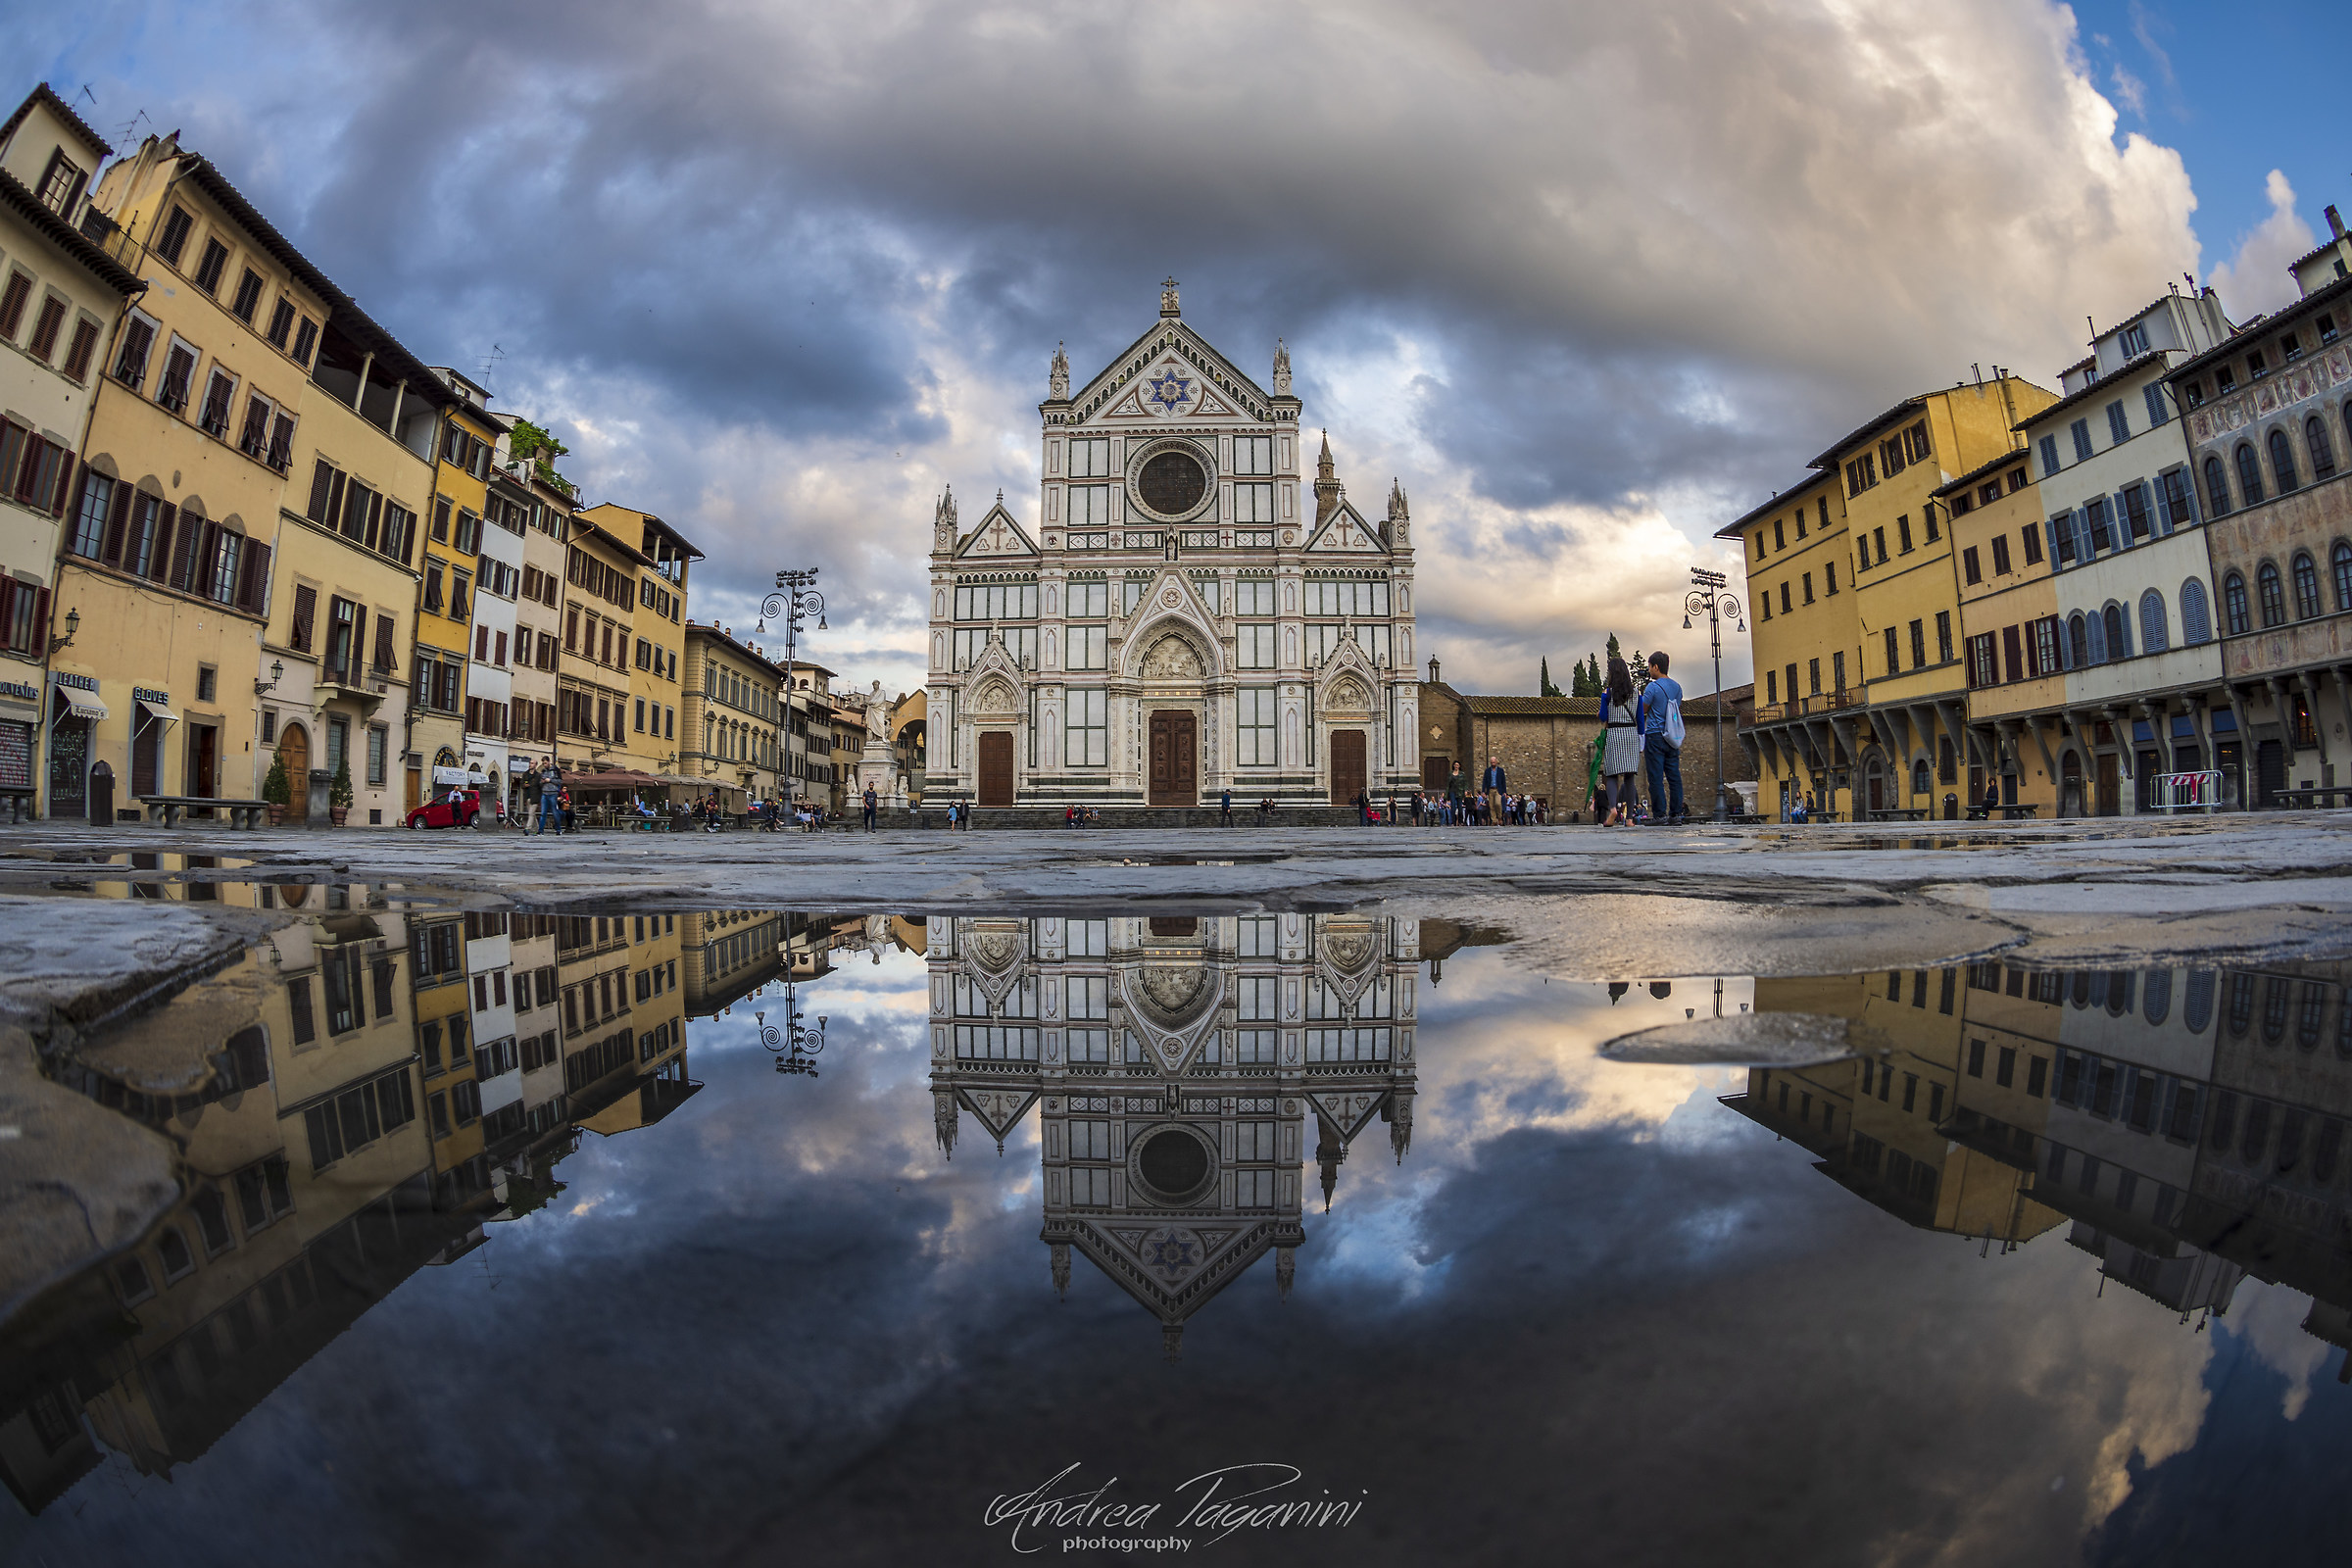 After the rain (Basilica of Santa Croce, Florence)...